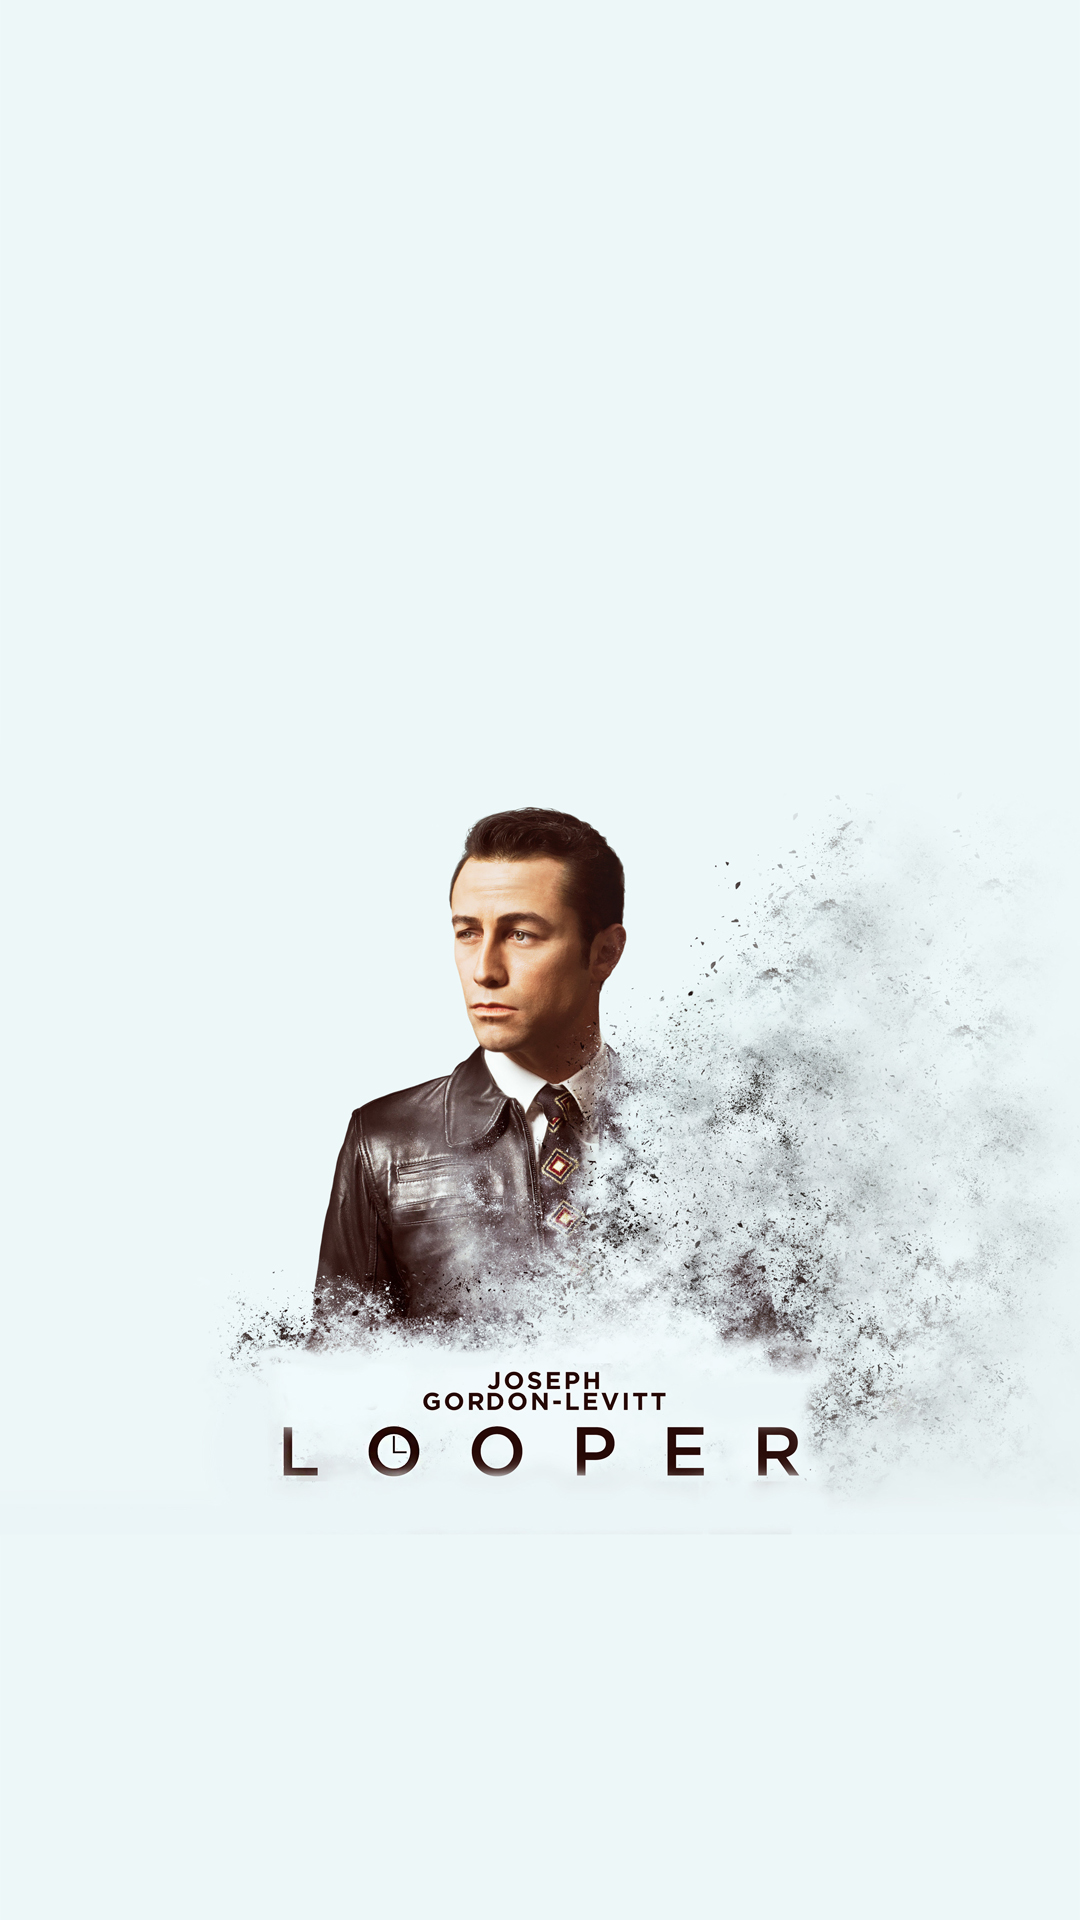 Looper HTC hd wallpaper